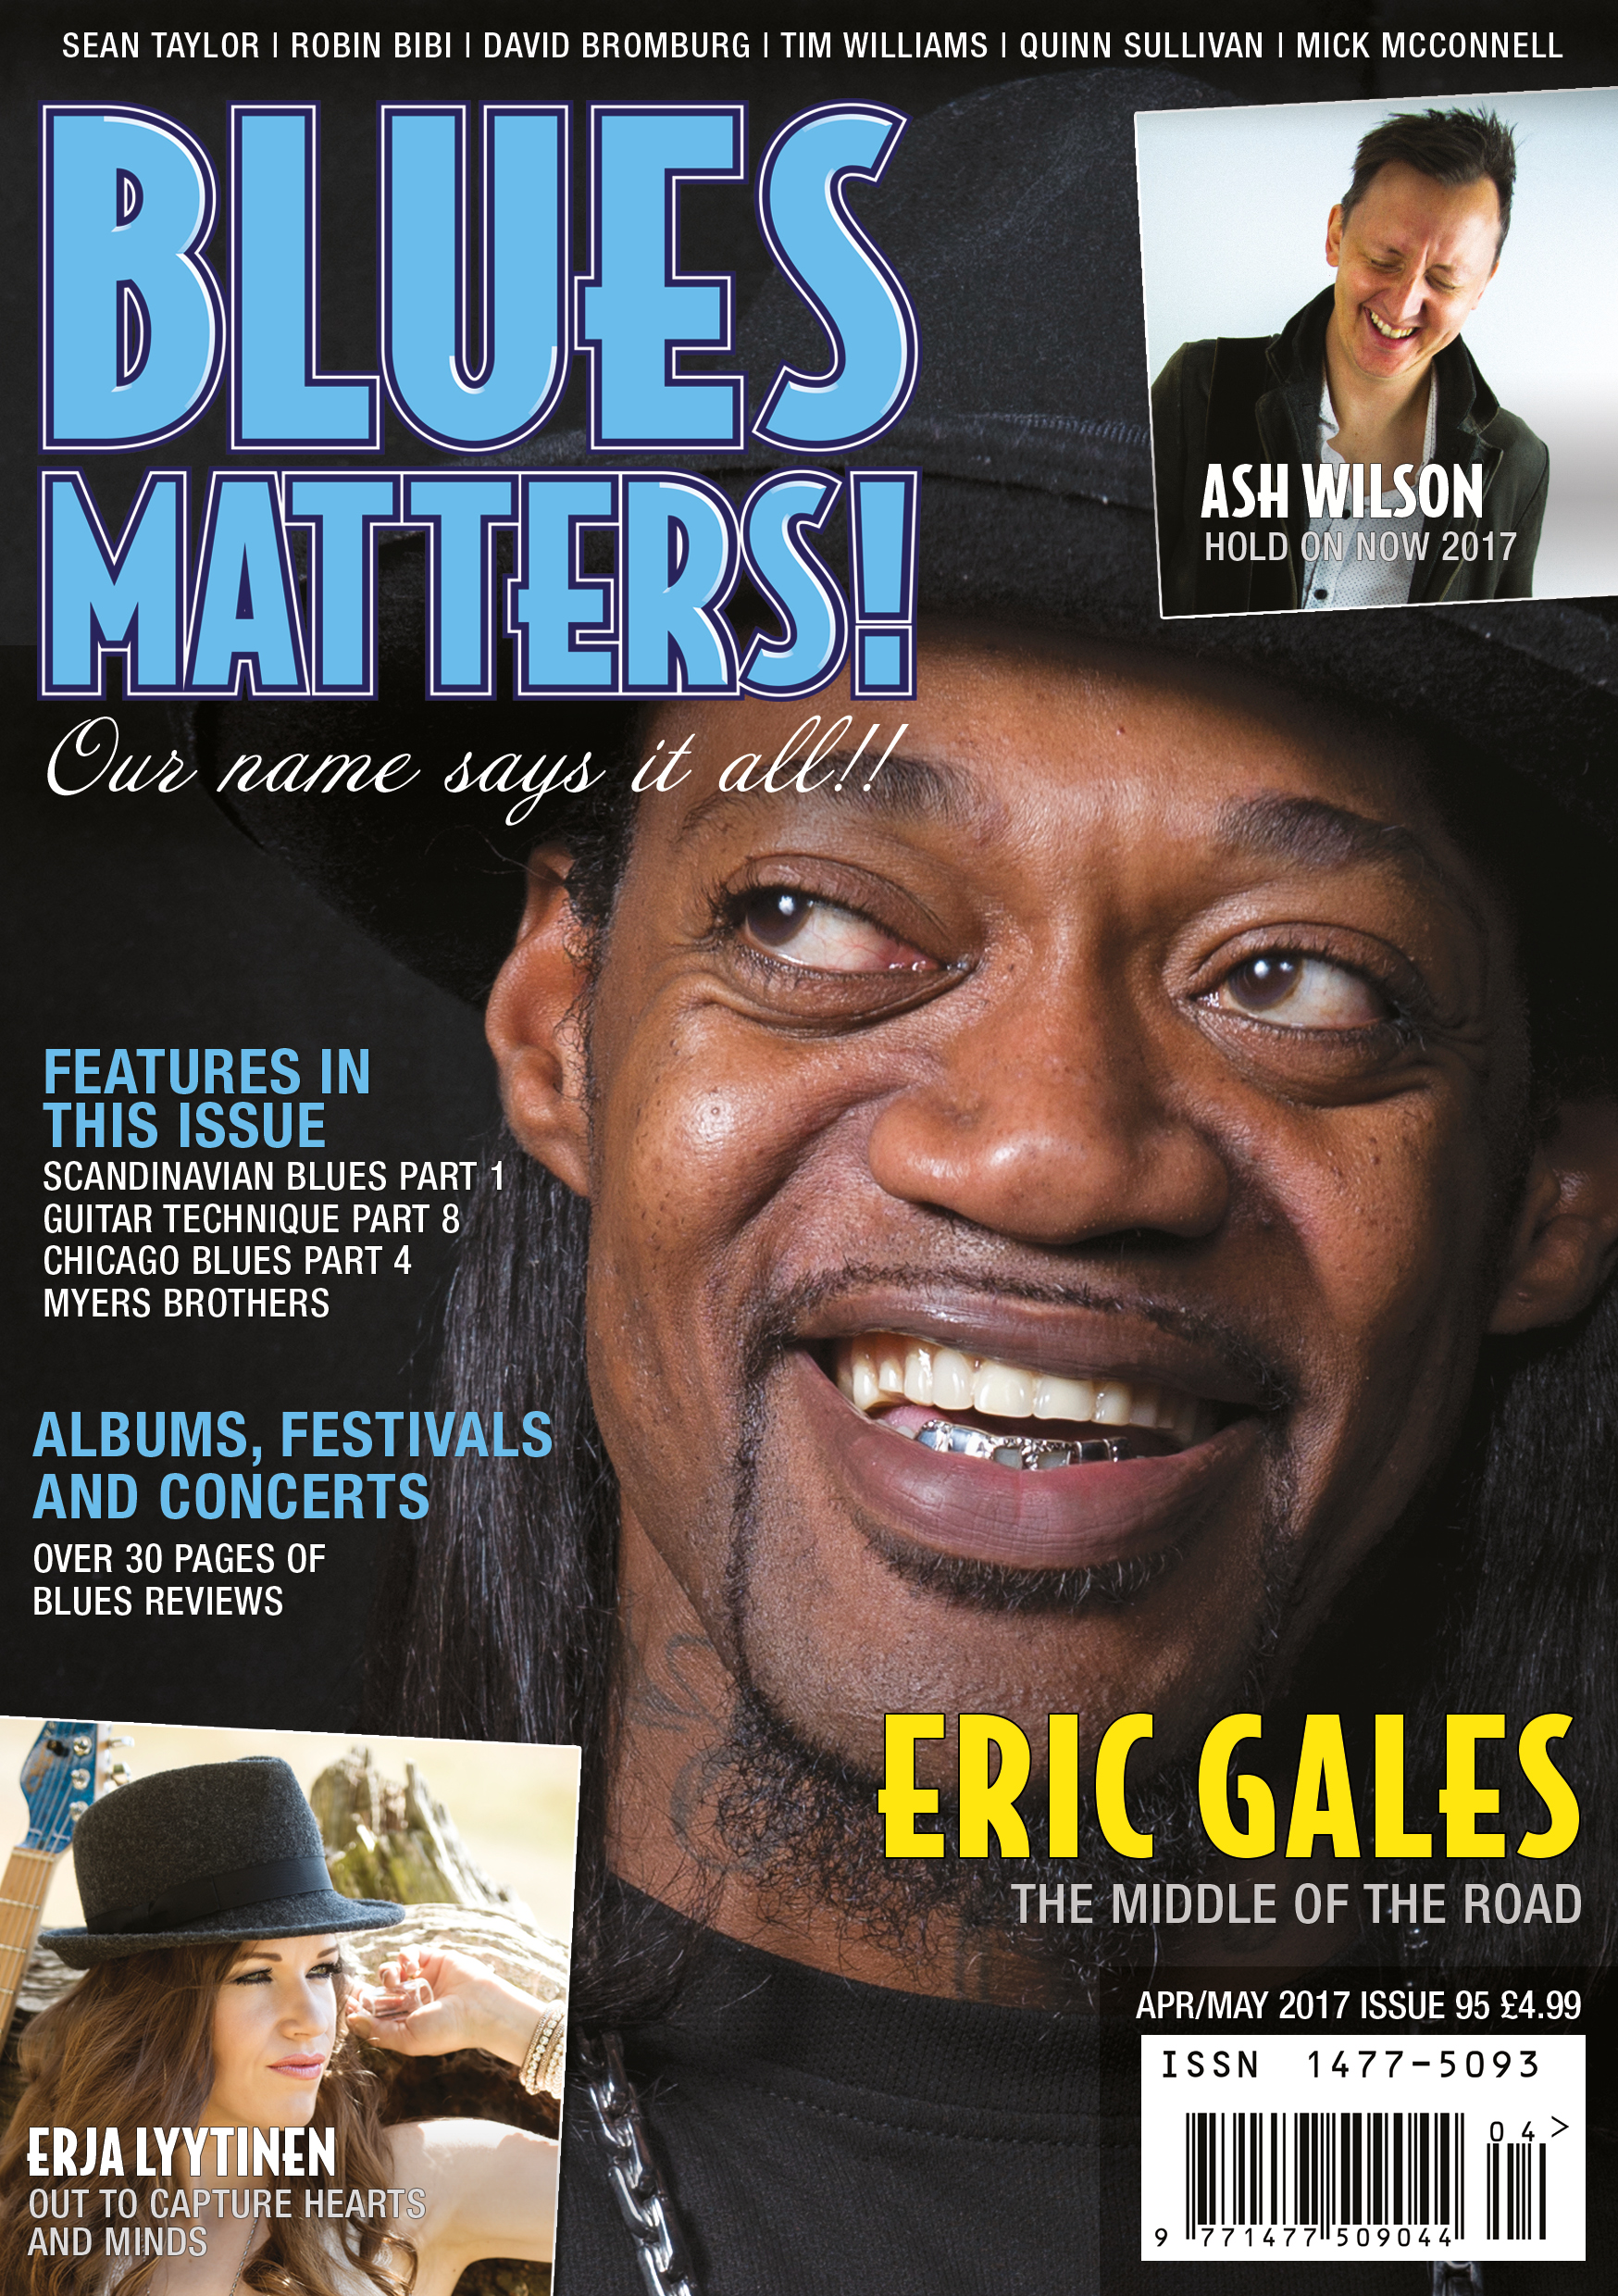 image of Issue 95 of Blues Matters magazine cover